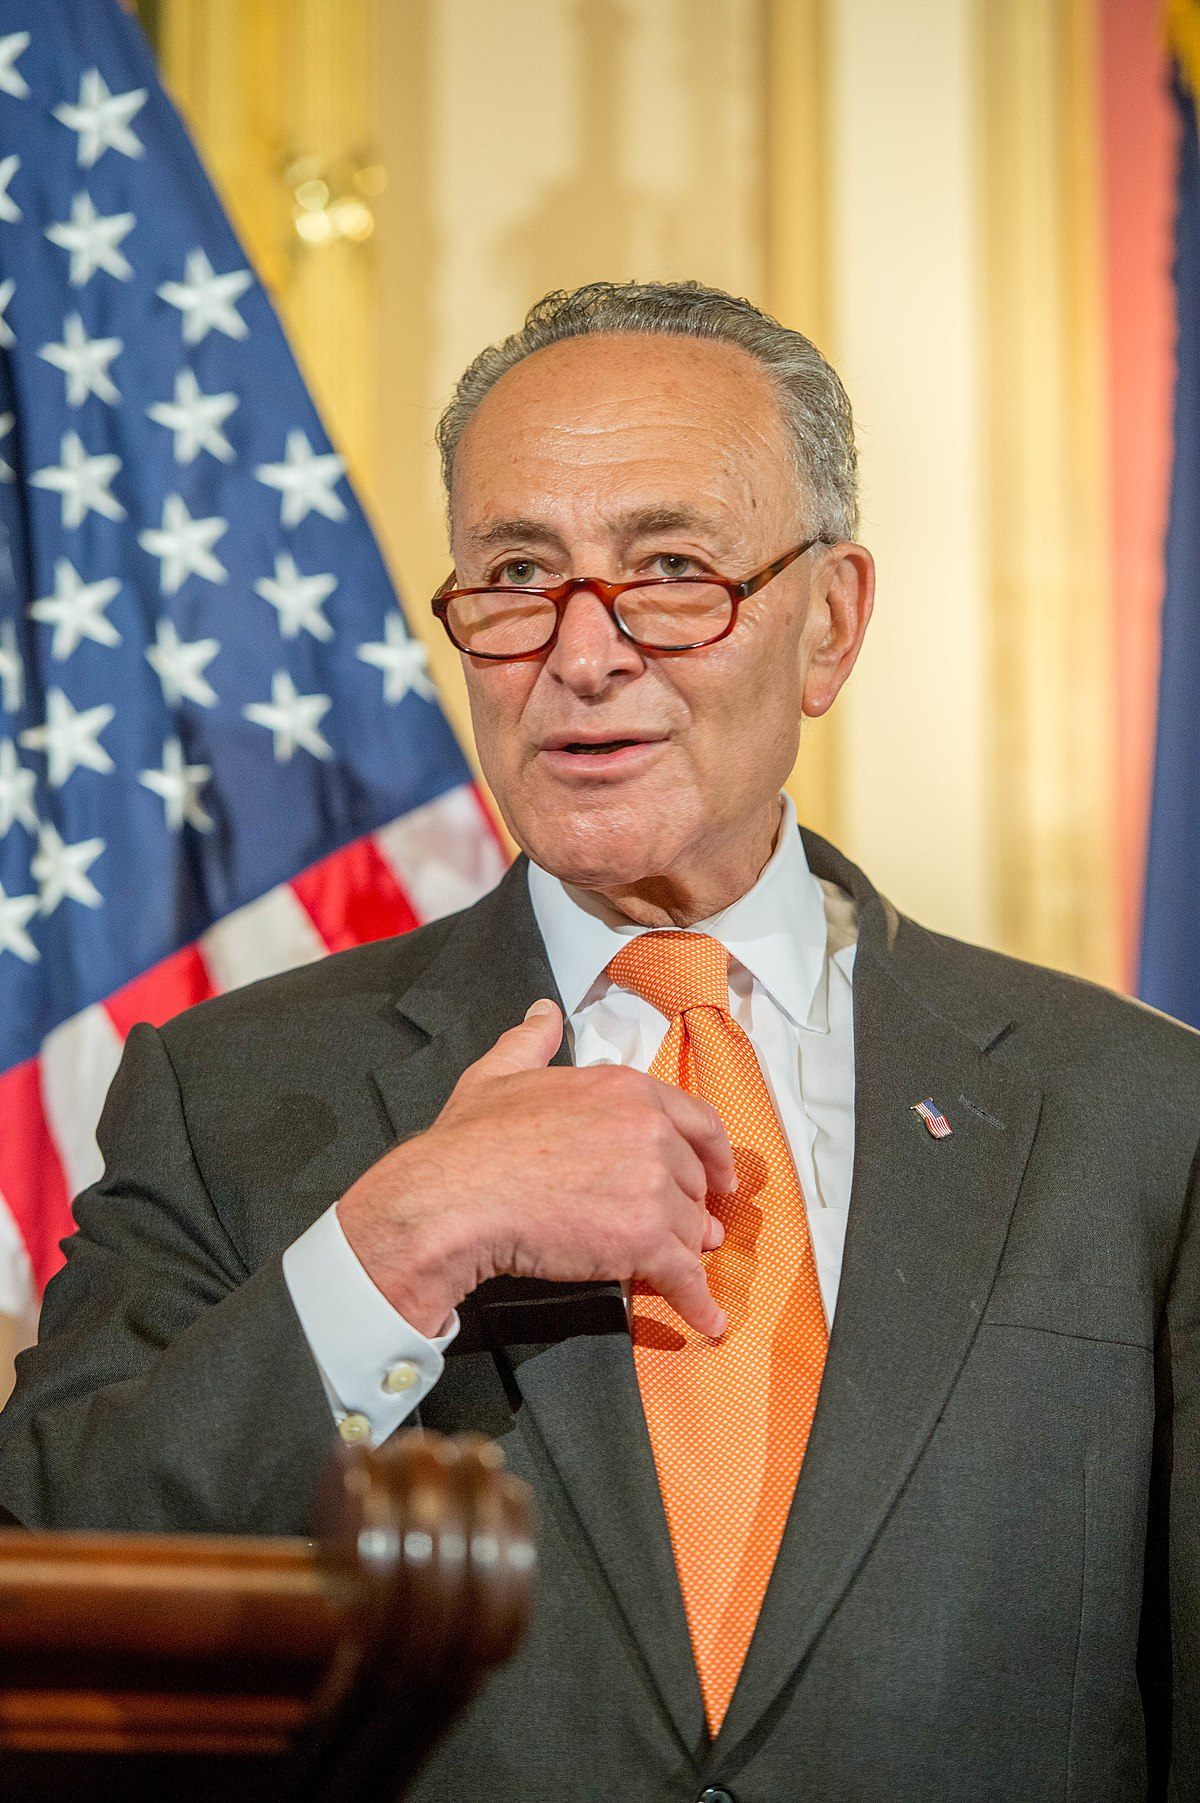 Letter to Schumer Re: Coronavirus